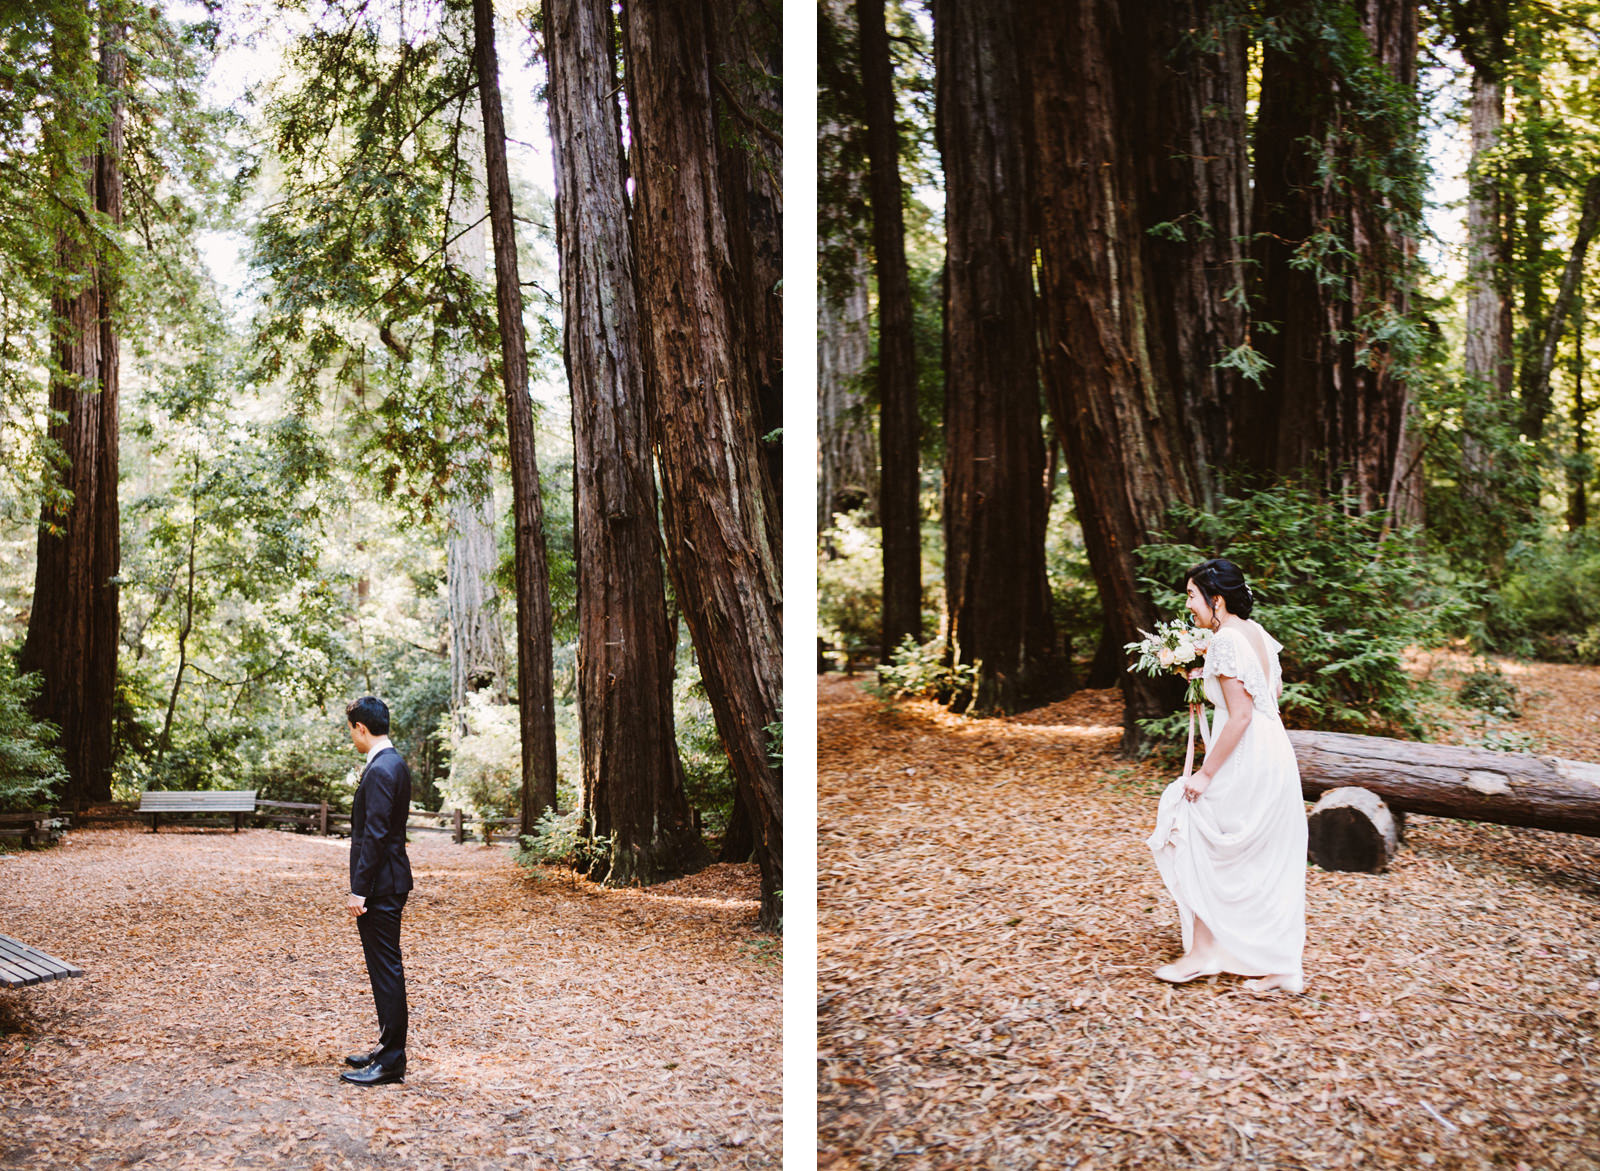 kimclay-blog-005 REDWOOD FOREST WEDDING